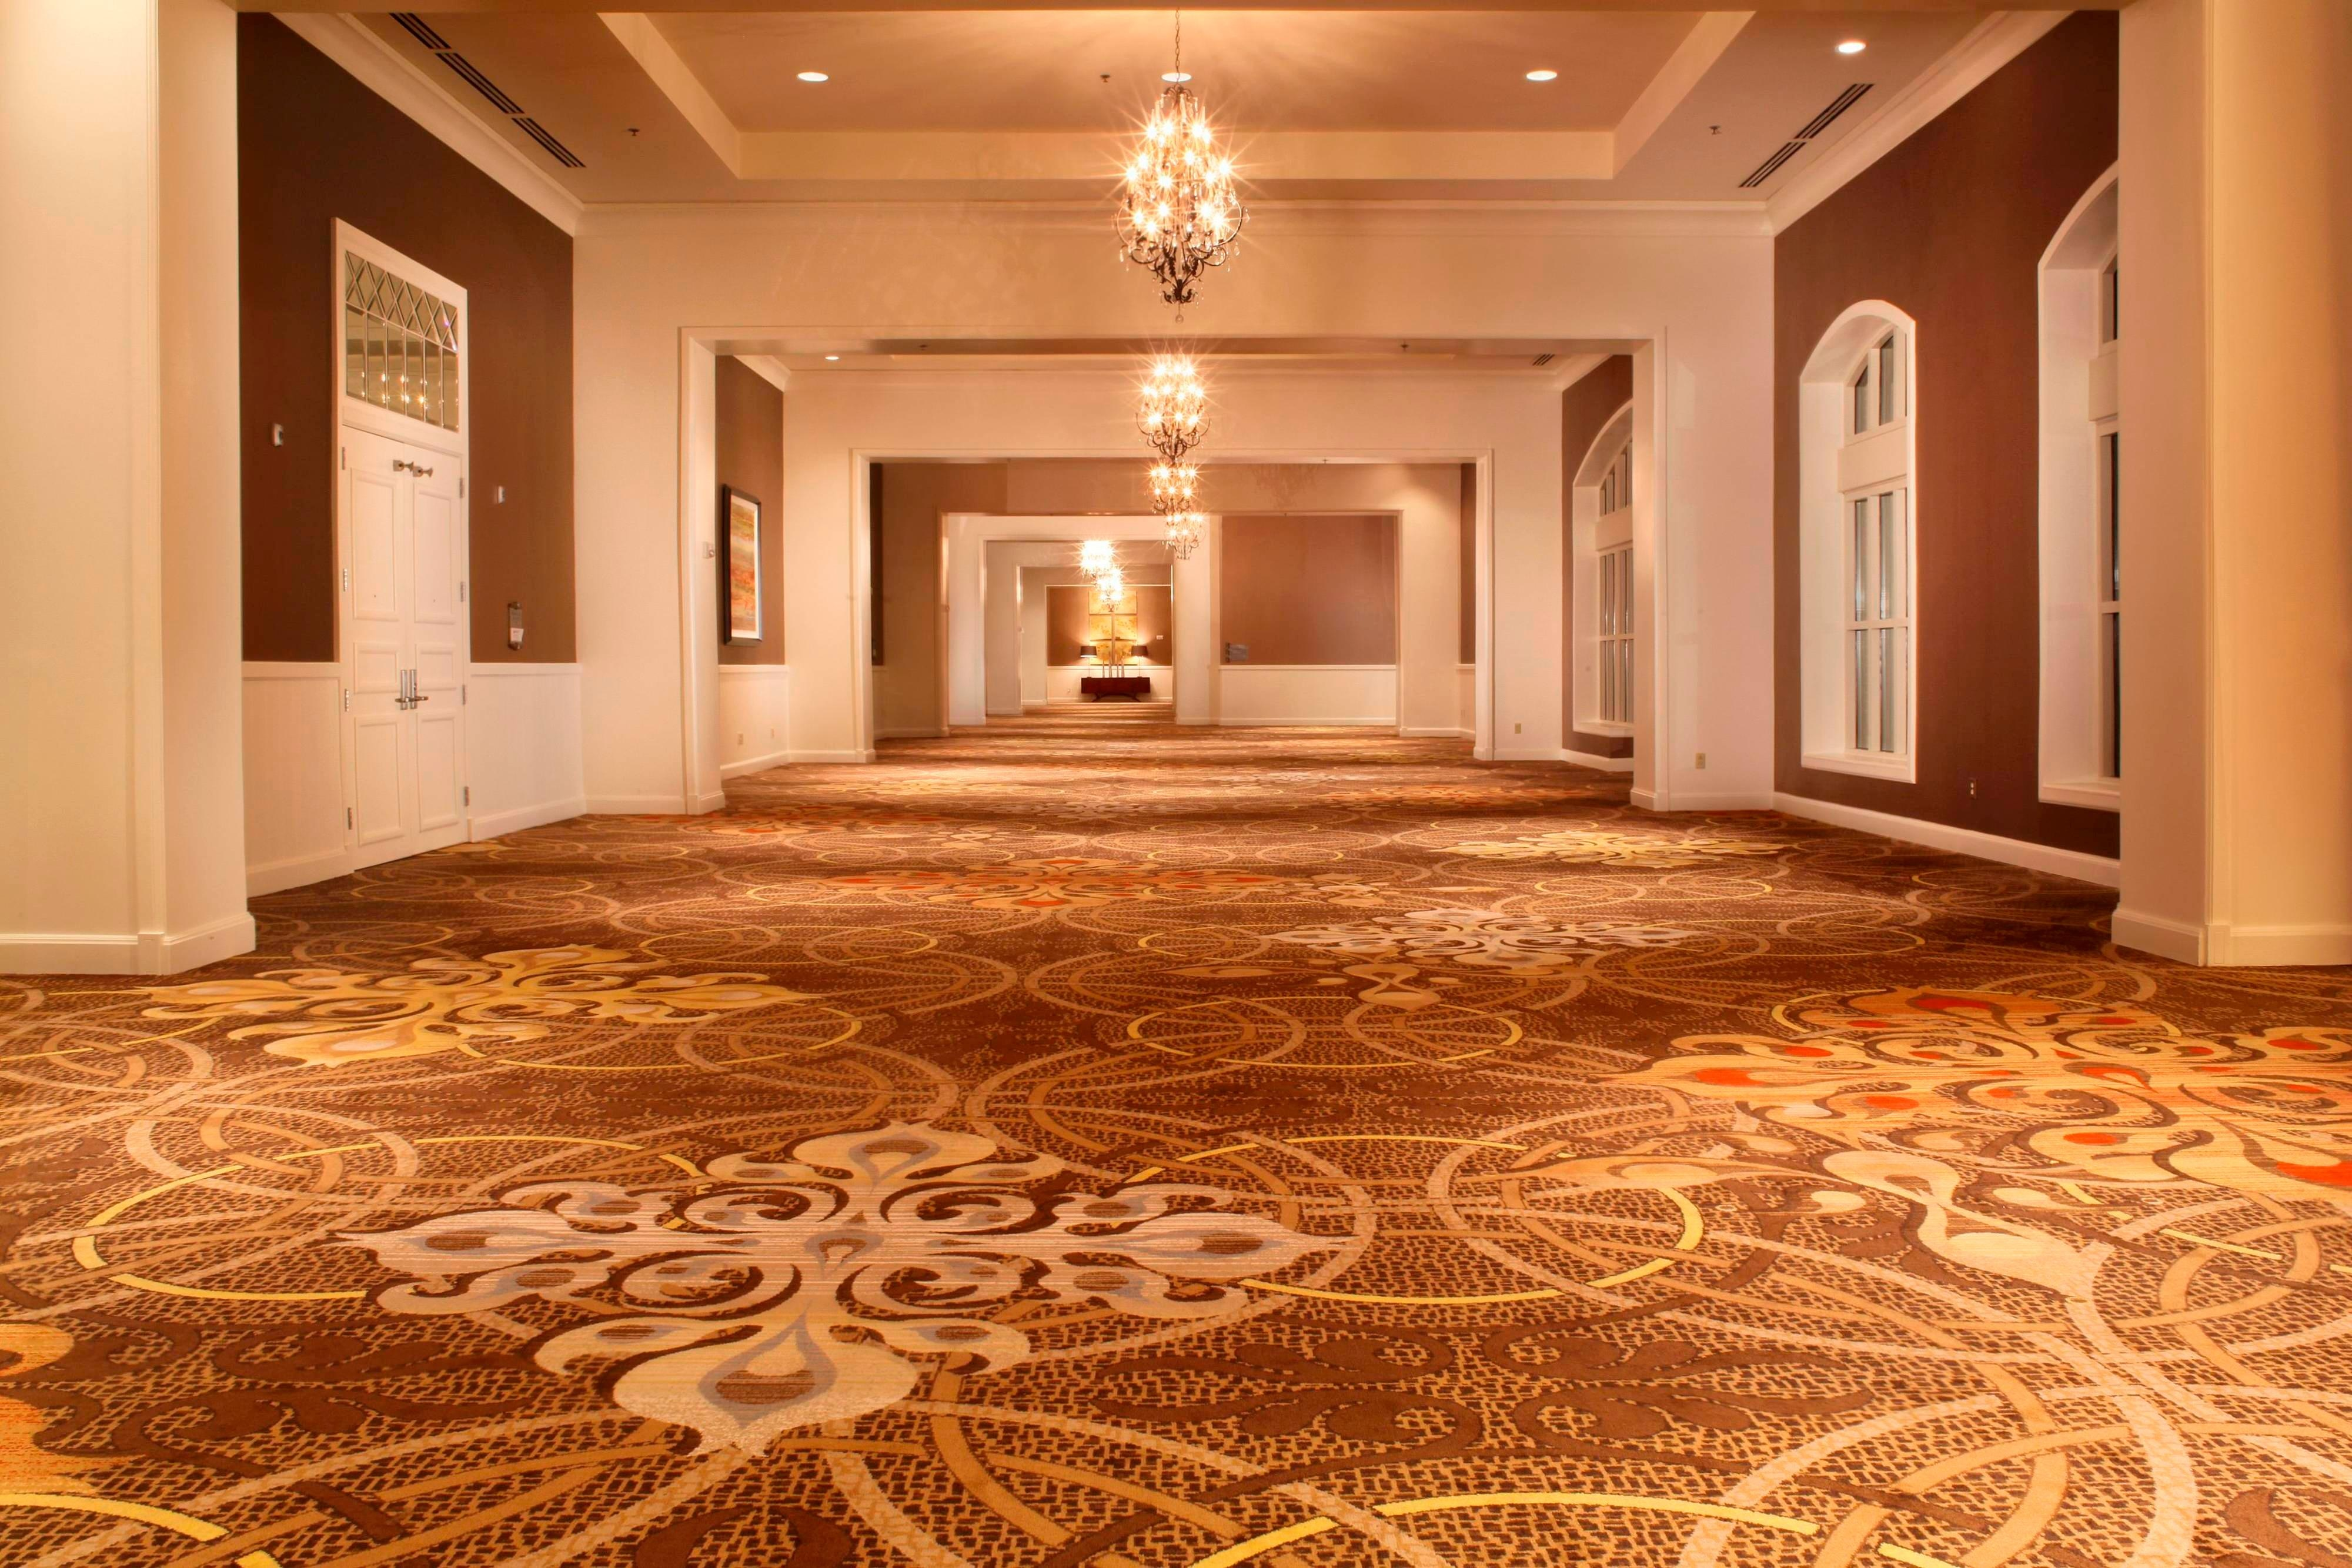 Sugar Land Marriott Pre-function Area